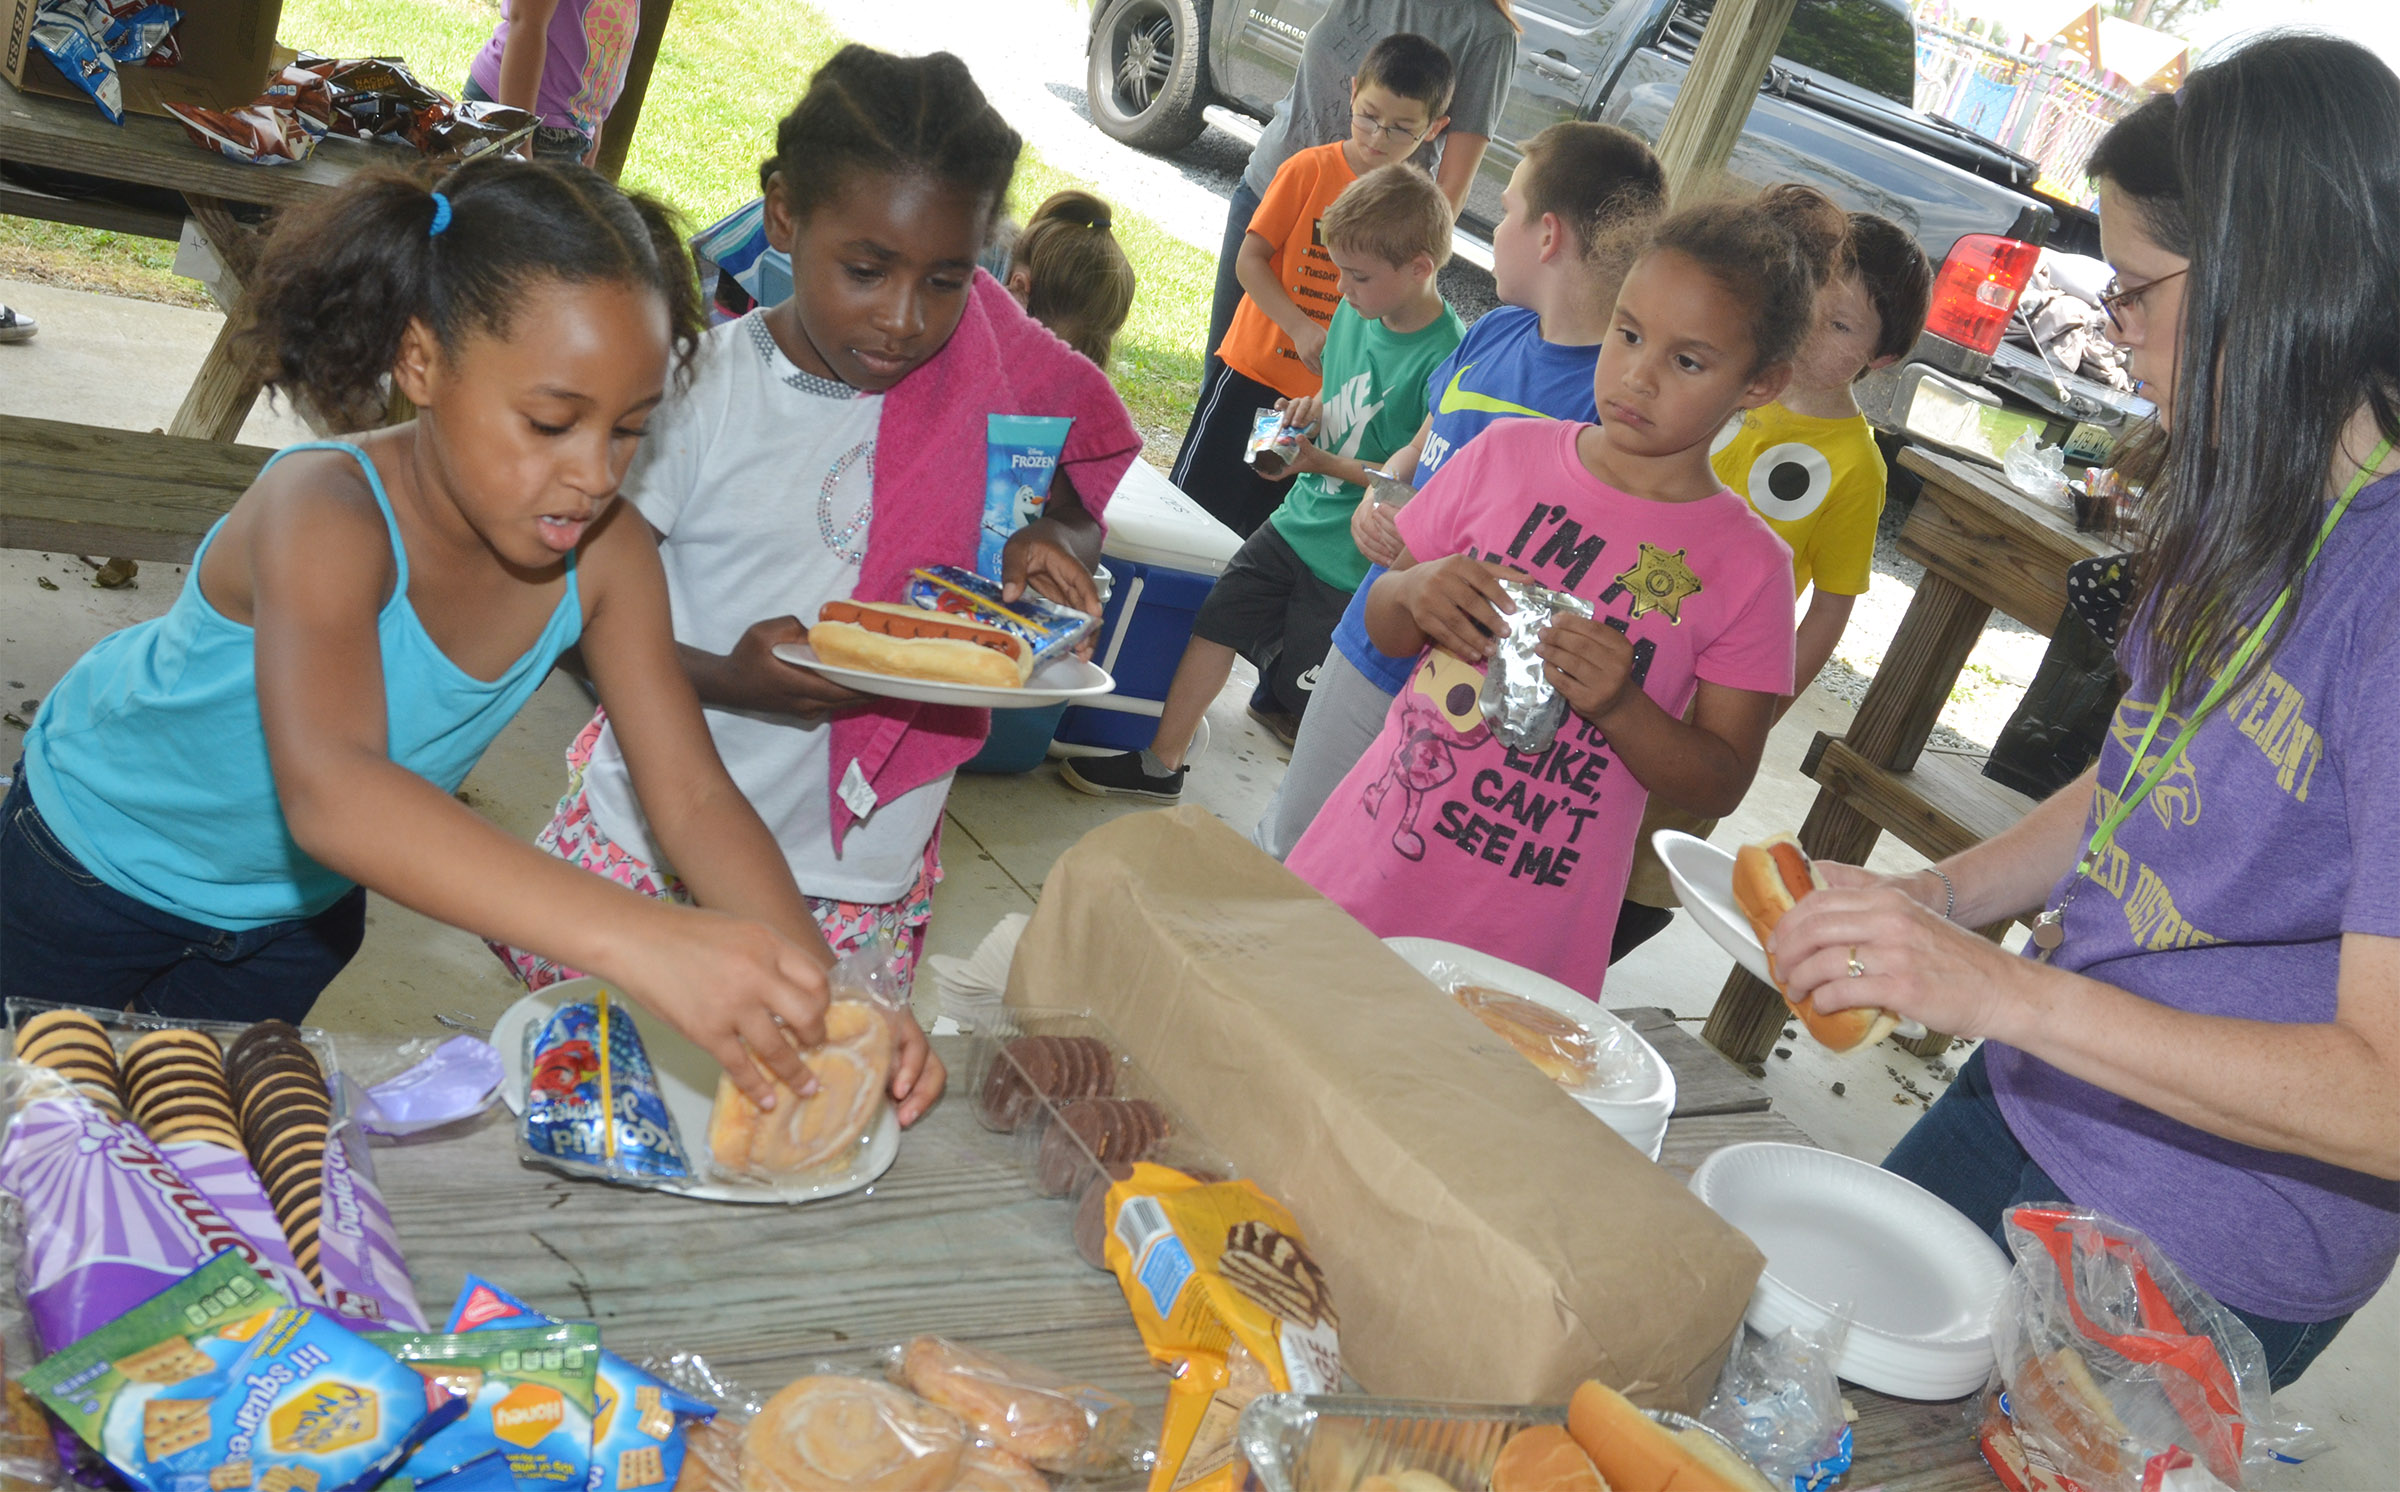 CES first-graders Kadance Ford, at left, and Destini Gholston get their food at the cookout.